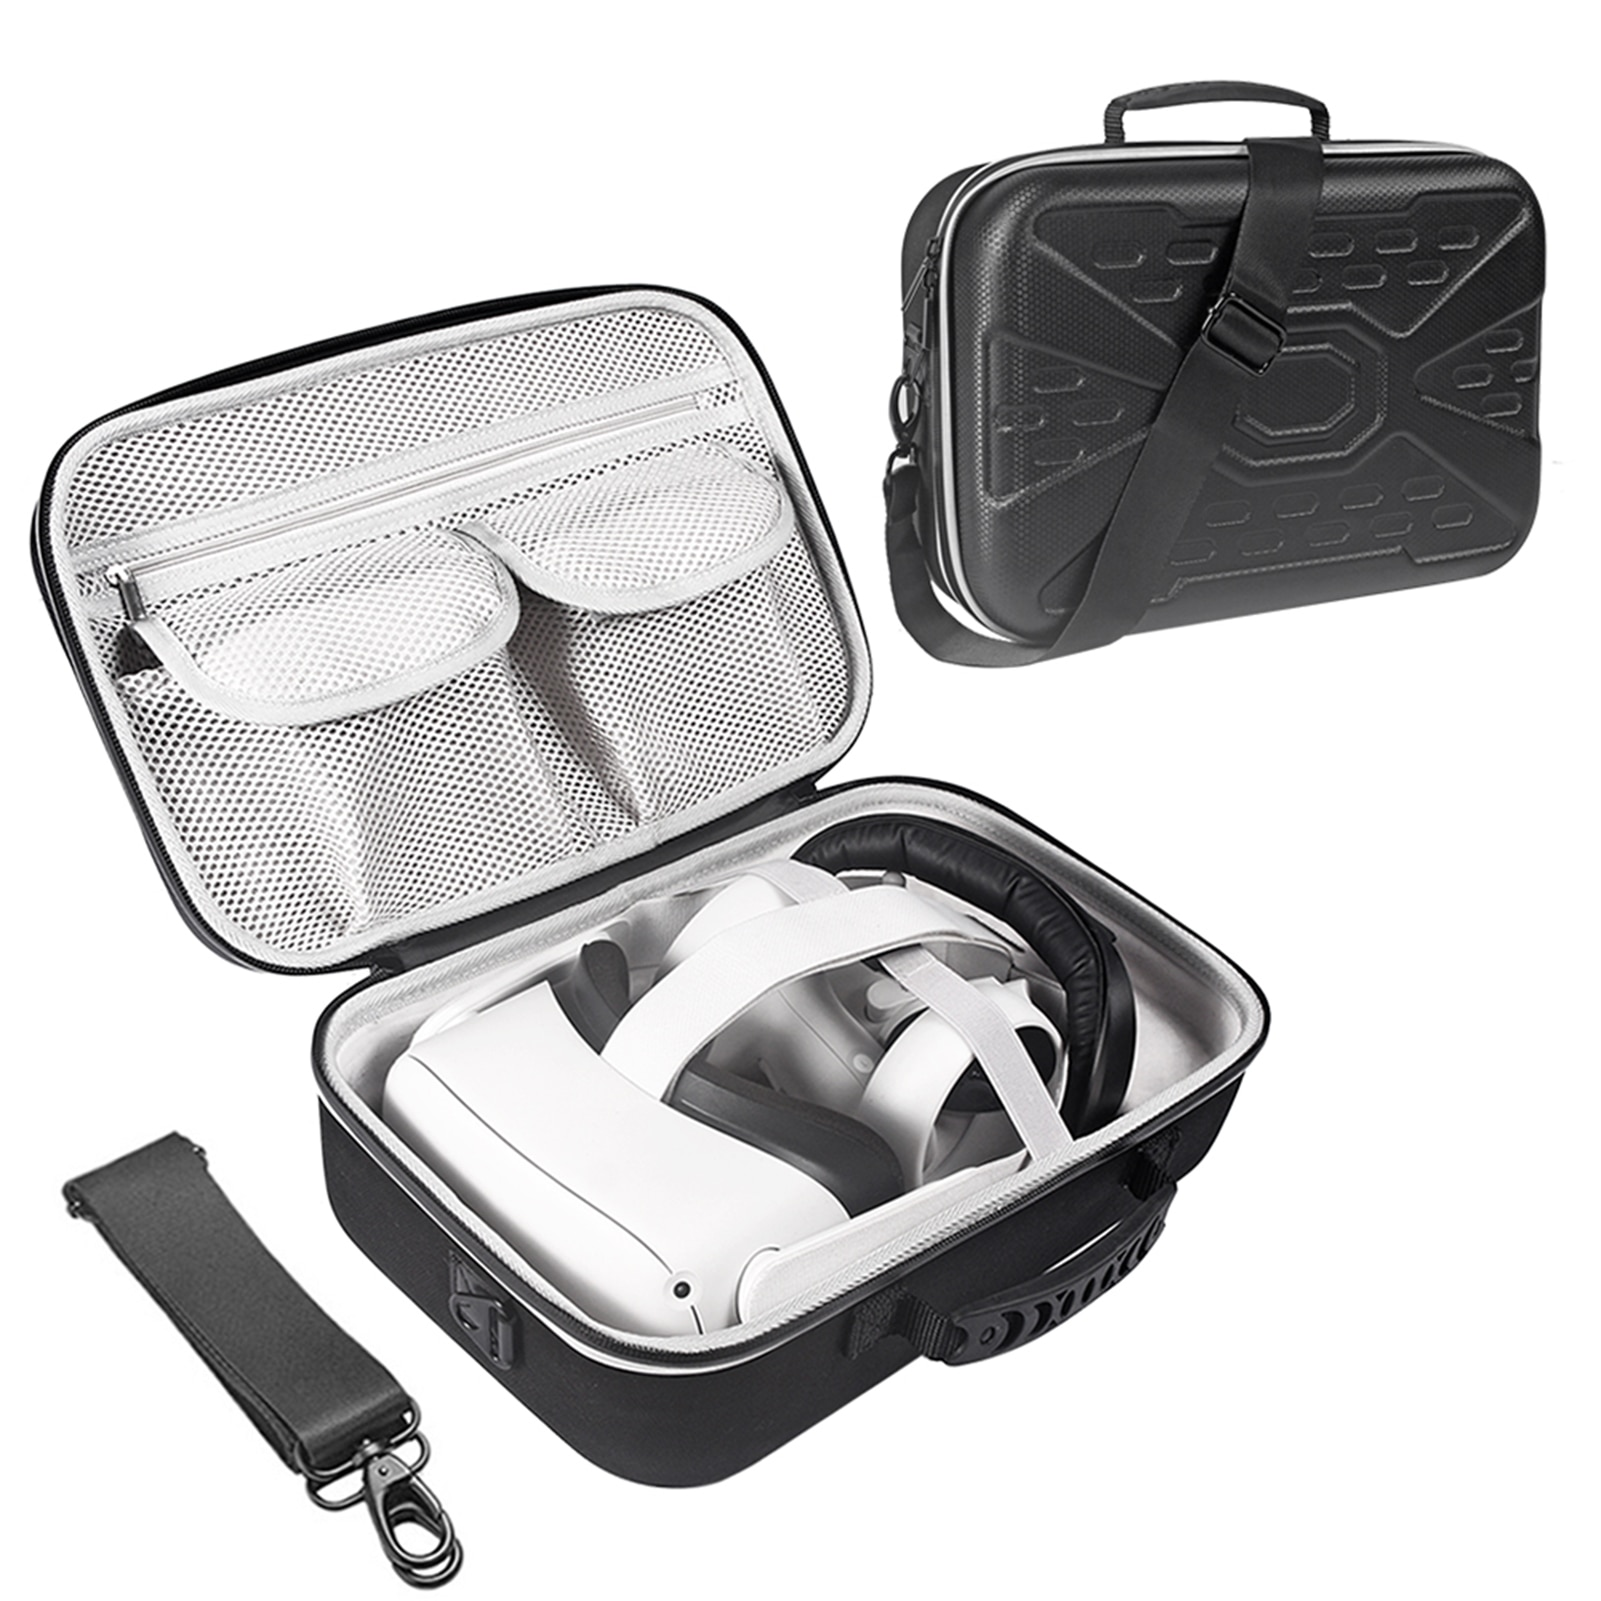 New EVA Hard Travel Protect Box Storage Bag Carrying Cover Case For Oculus Quest 2/Oculus Quest All-in-one VR And Accessories недорого